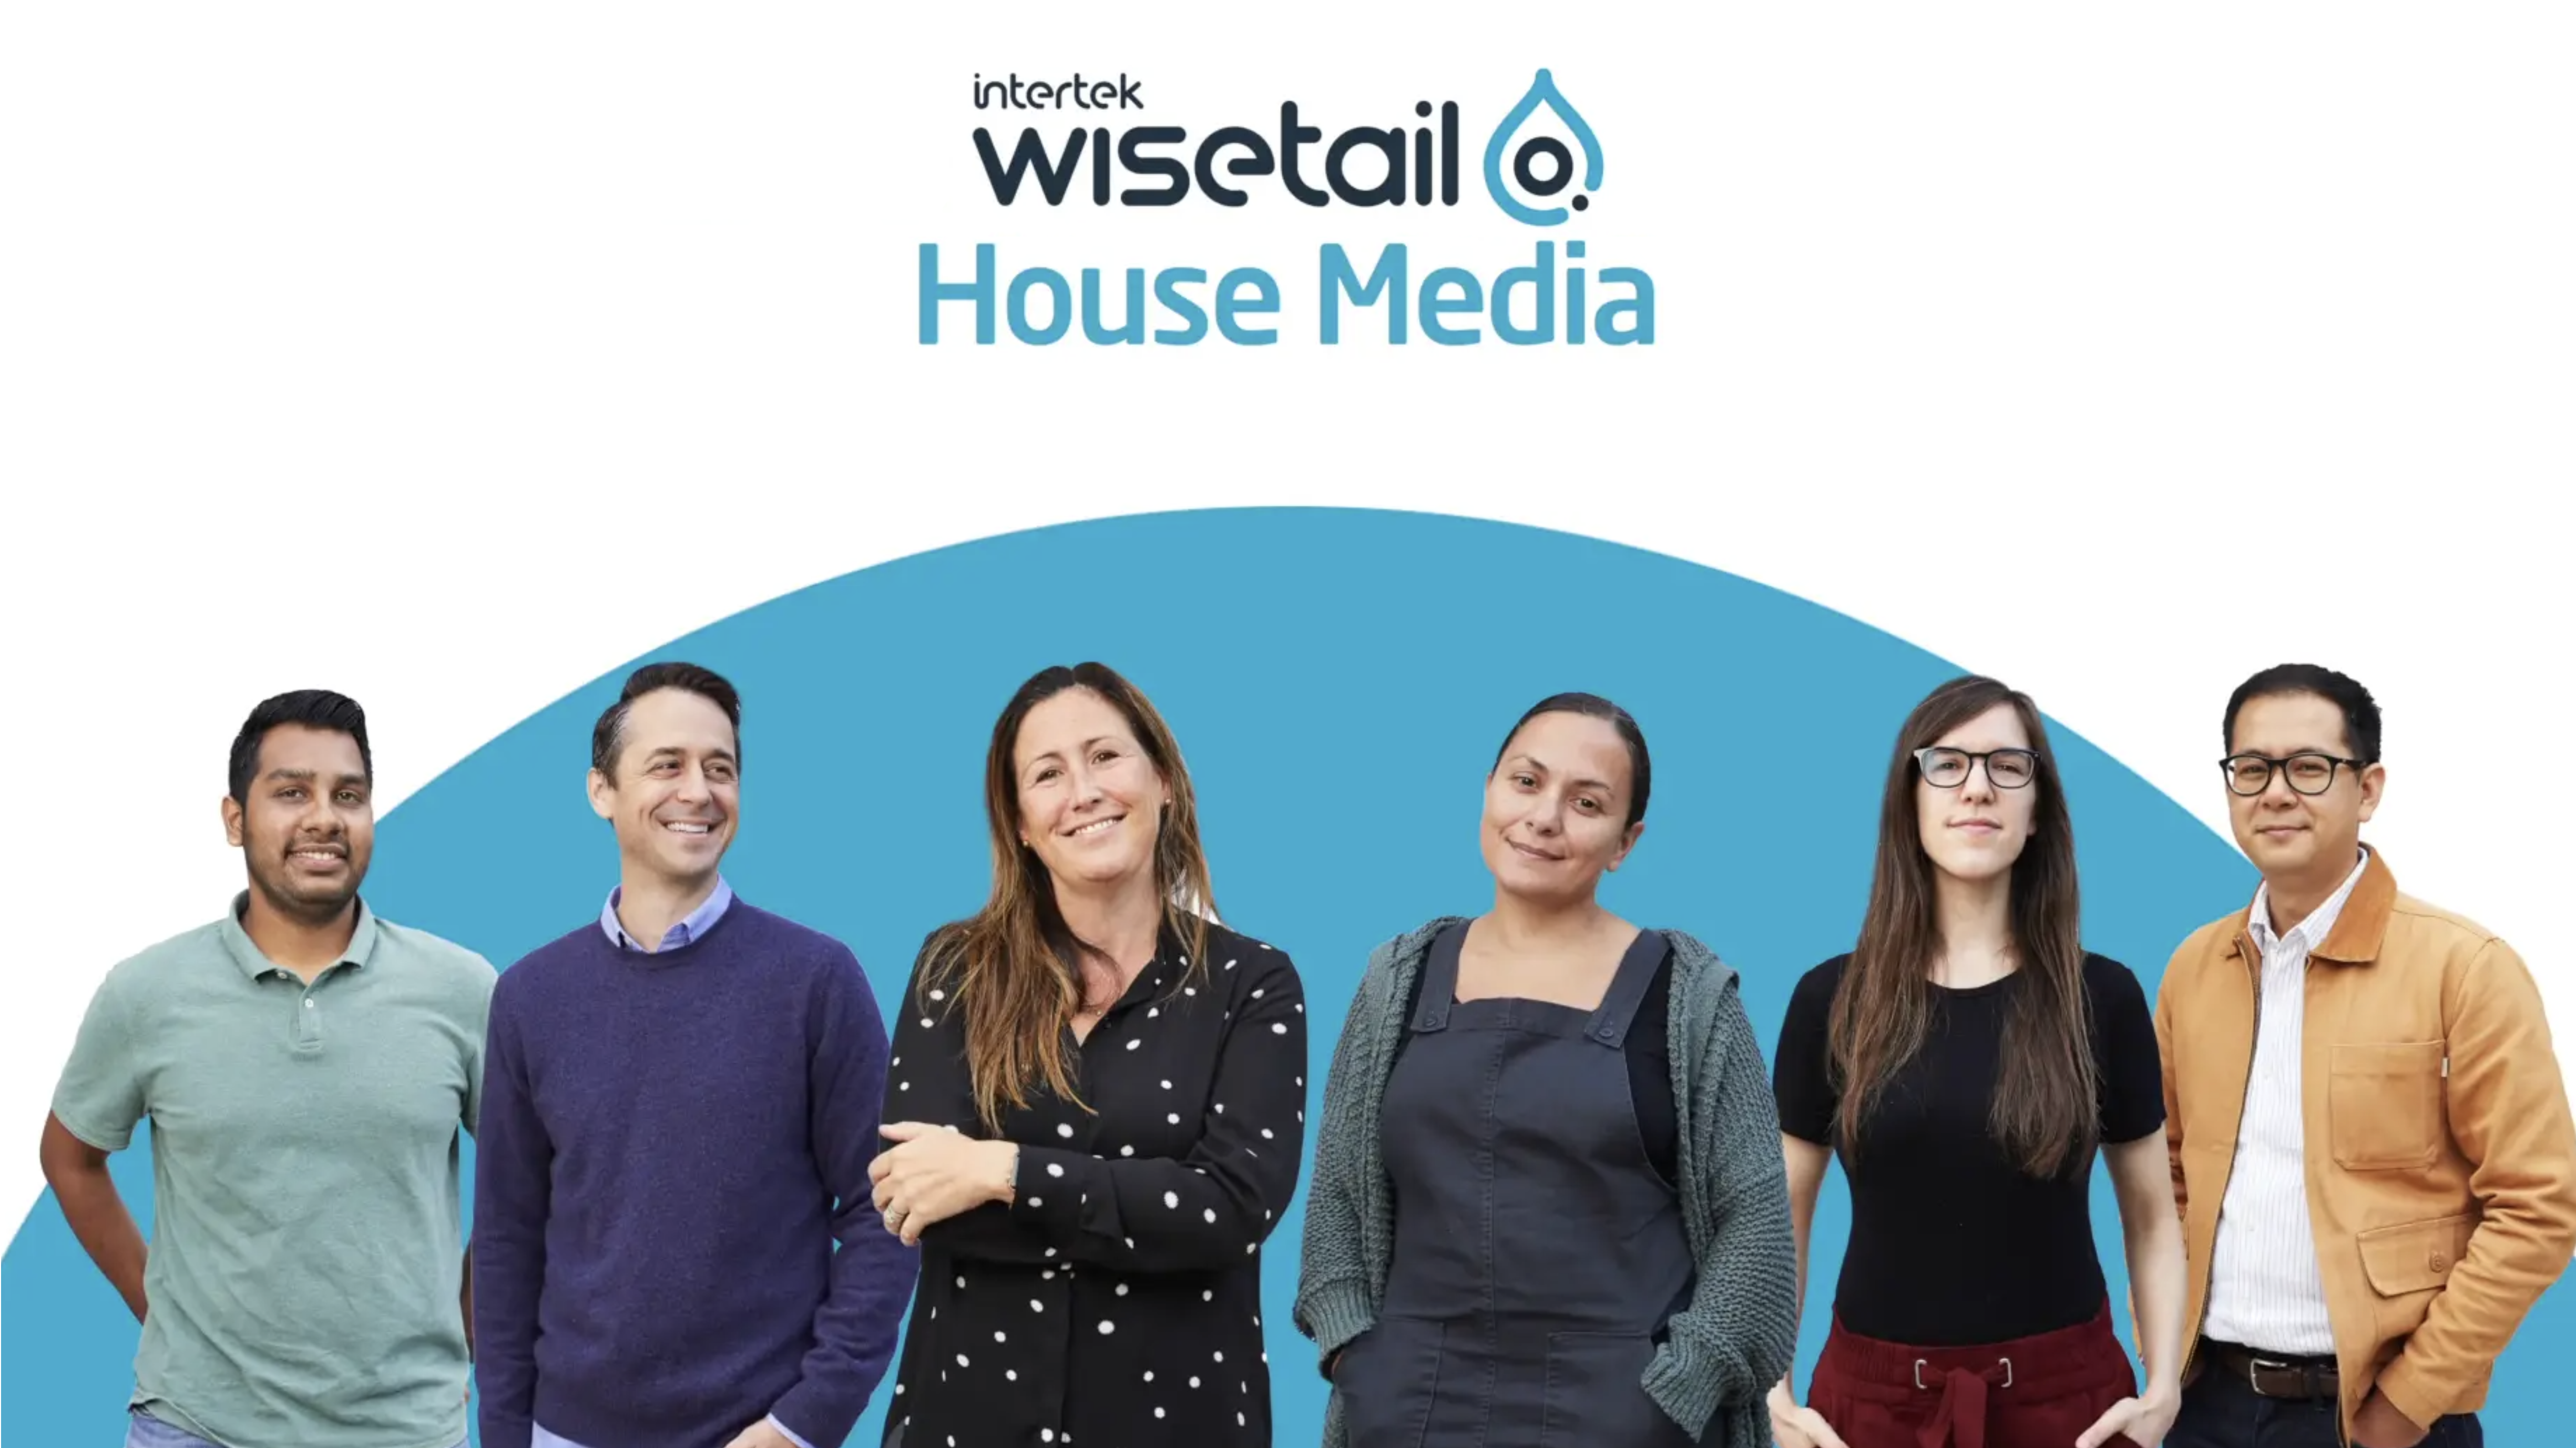 thumbnail for video; wisetail house media with six people on a blue circle